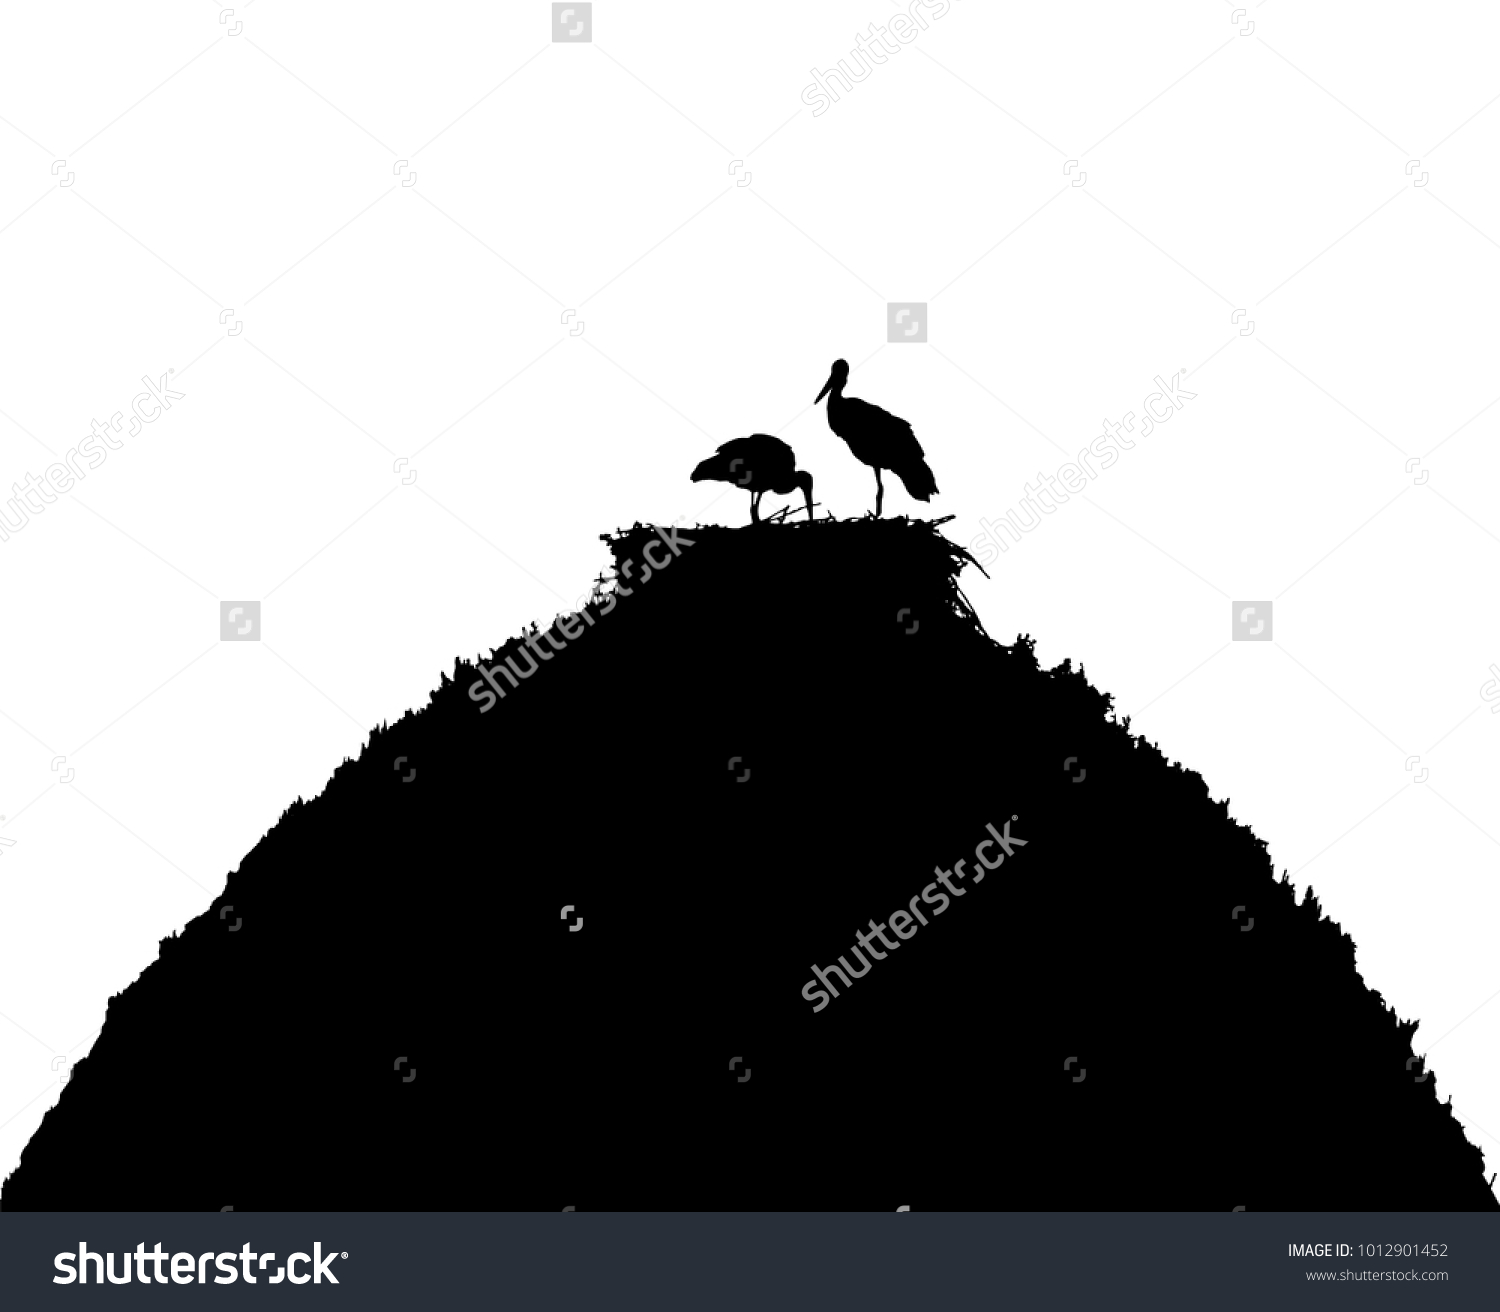 White Storks Nest On Roof Silhouette Stock Photo (Photo, Vector ...